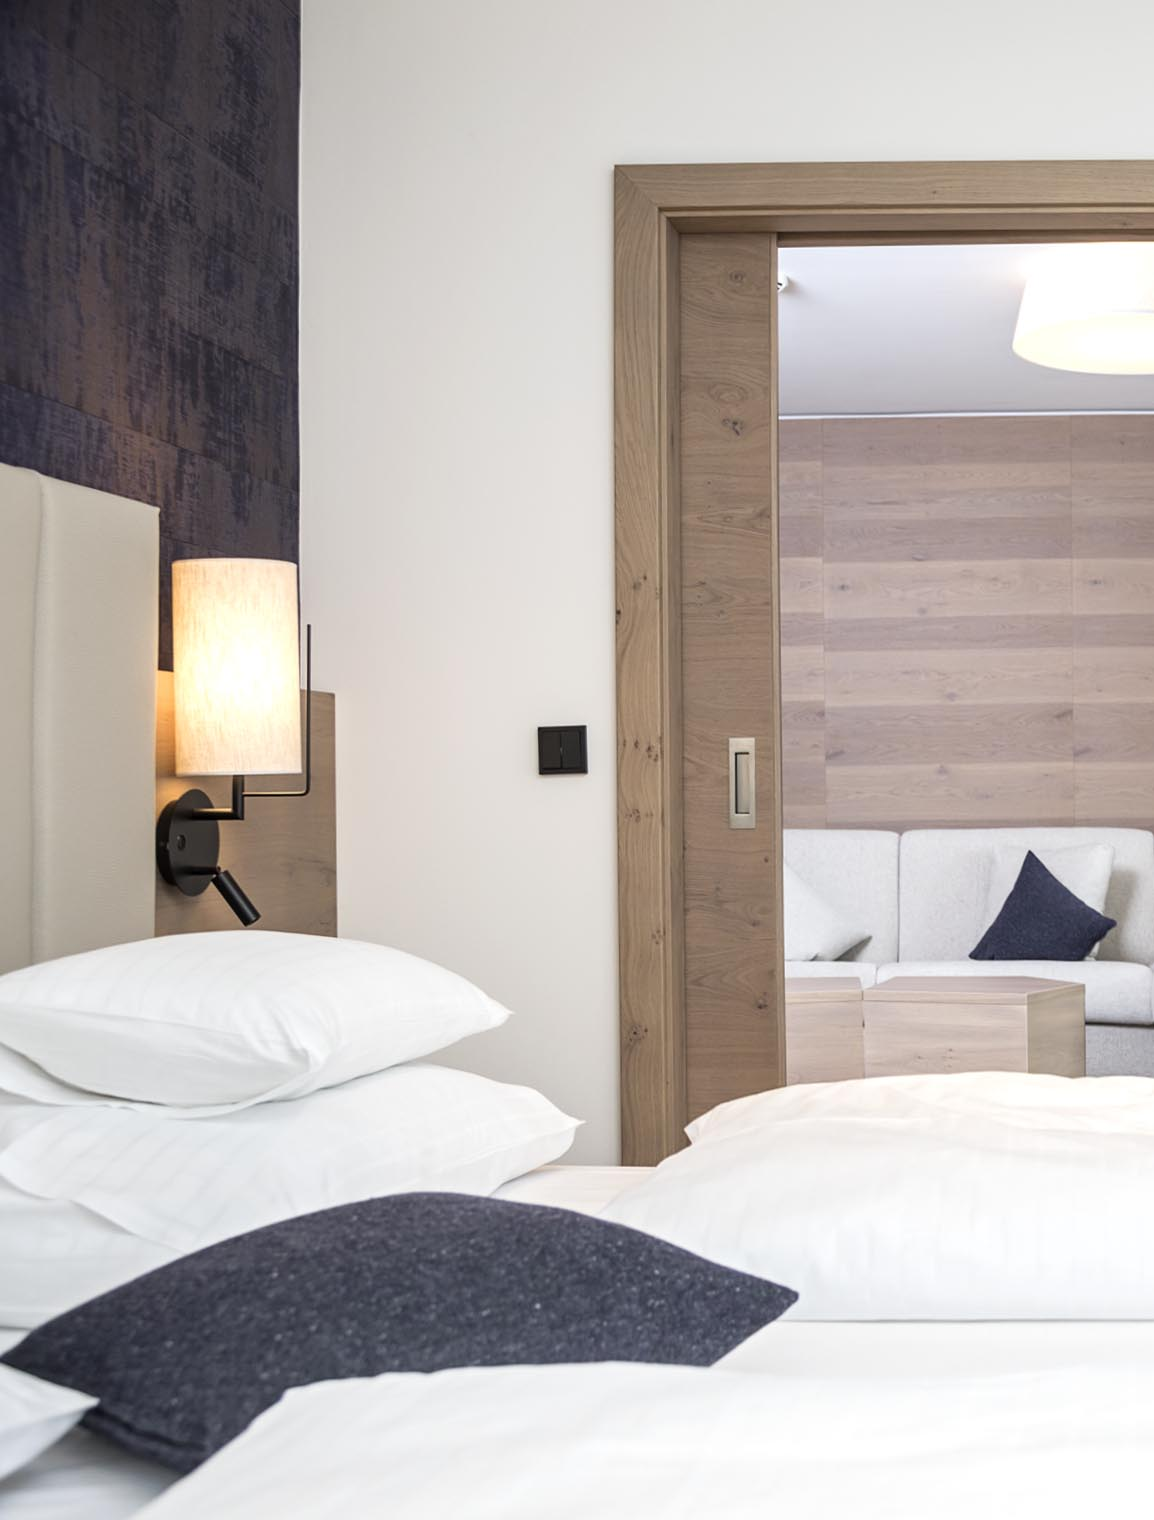 Sporthotel_HoheSalve_bedroom_rooms2